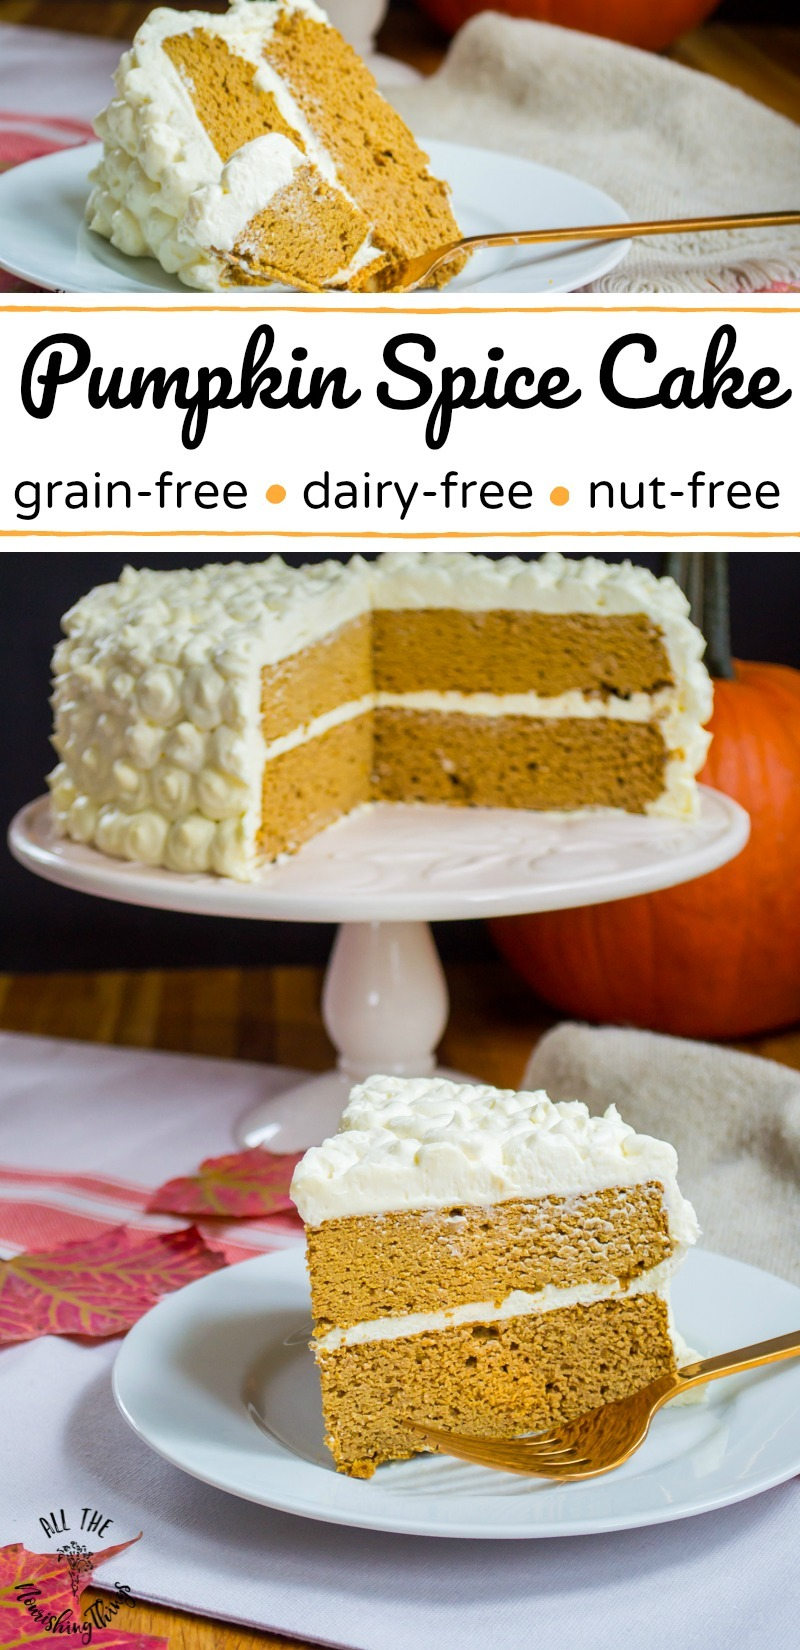 collage of 2 images of grain-free pumpkin spice cake with text overlay between the images